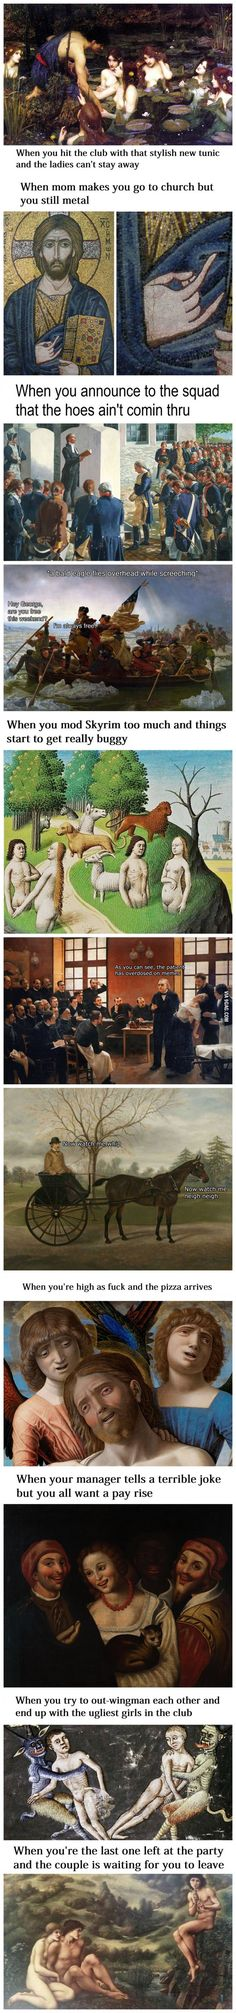 """Classical Art Memes Latest (Part-1)""---Hahaha---thanks, Stephanie!!! The ""wingman"" one was my favorite..."